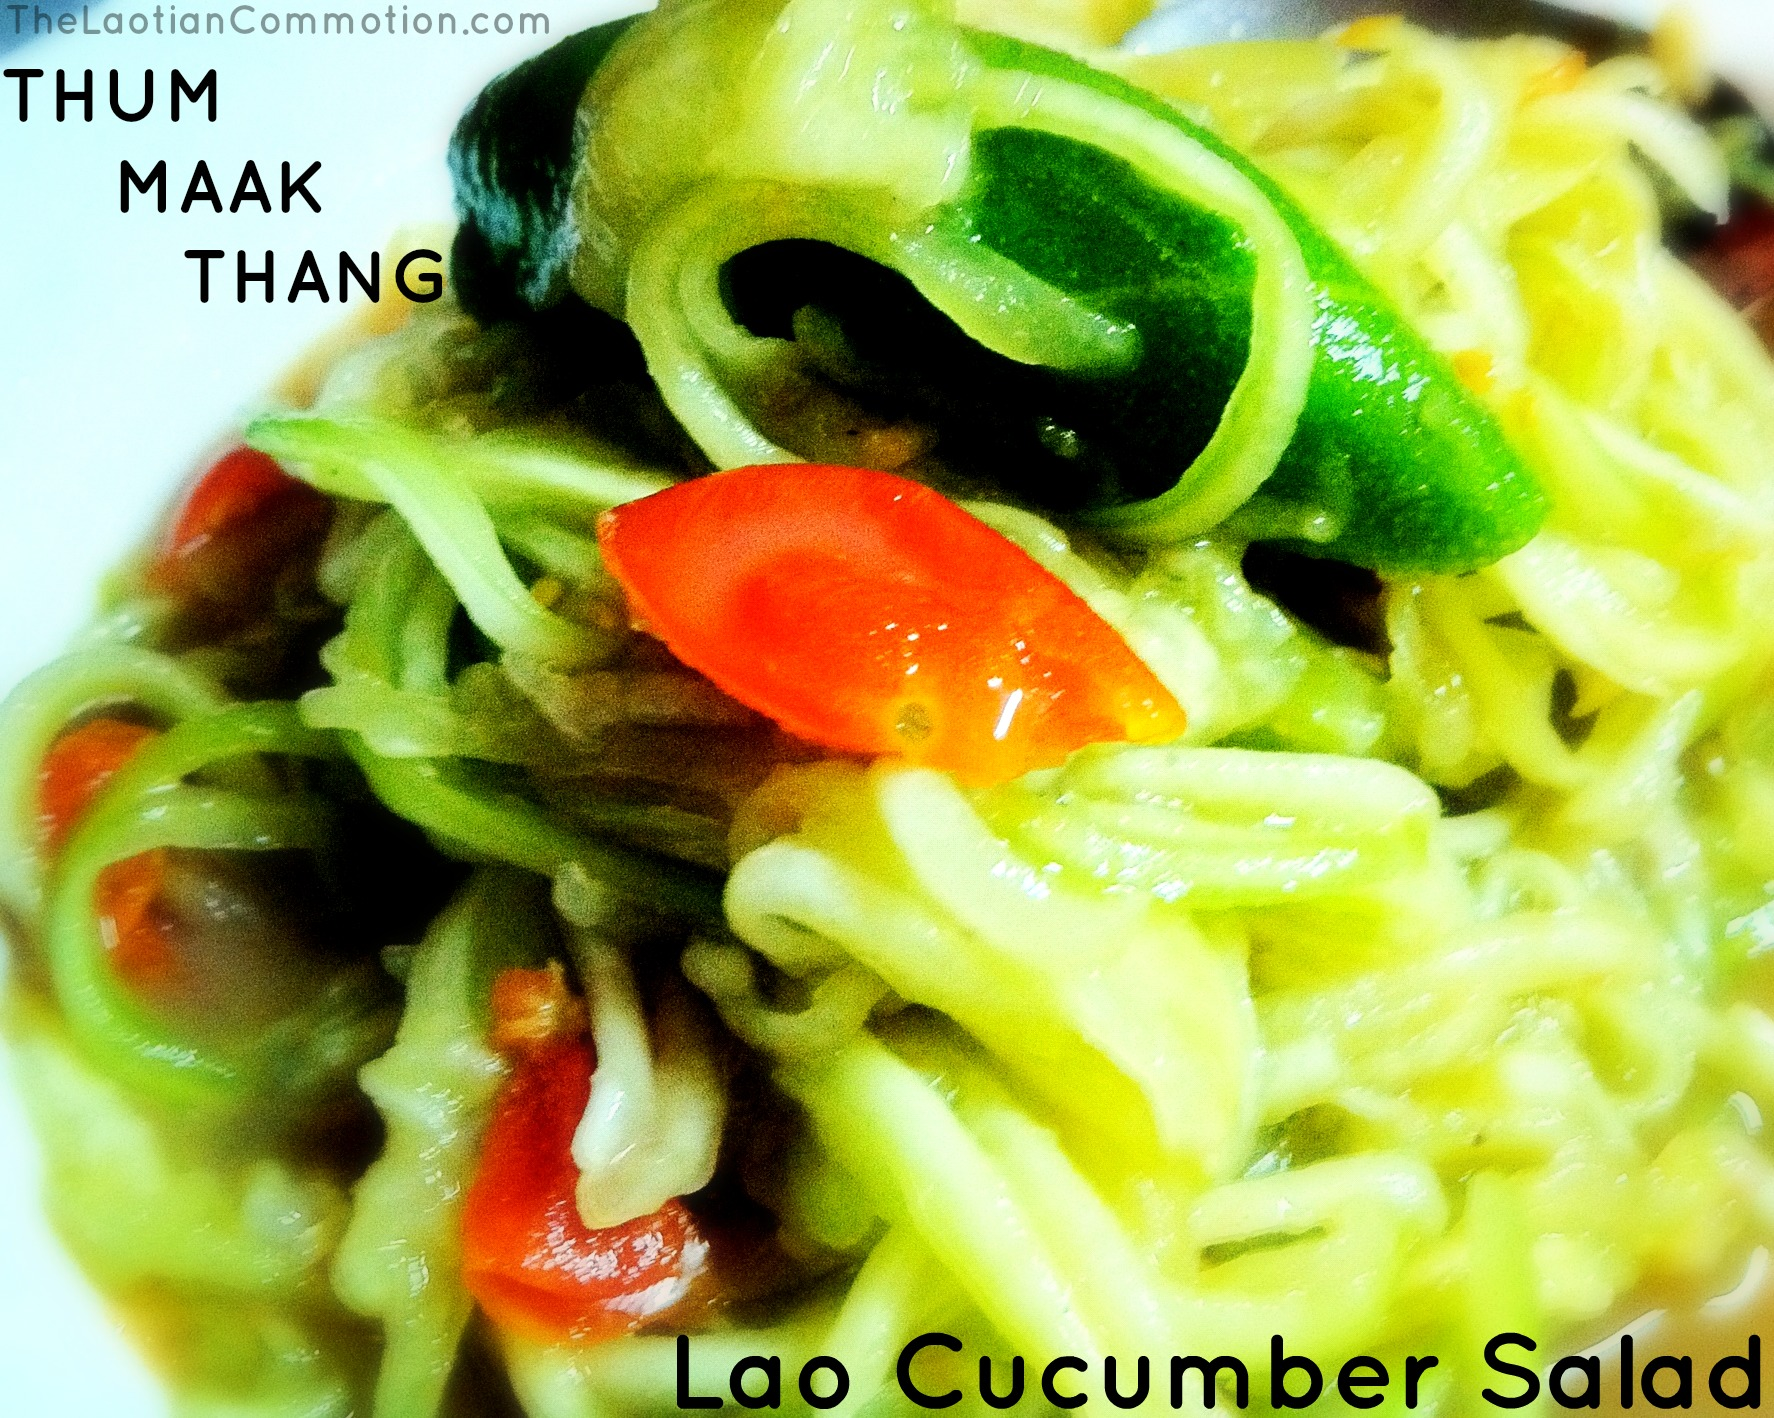 Laotian food the laotian commotion thelaotiancommotion thum maak thang lao cucumber salad forumfinder Choice Image